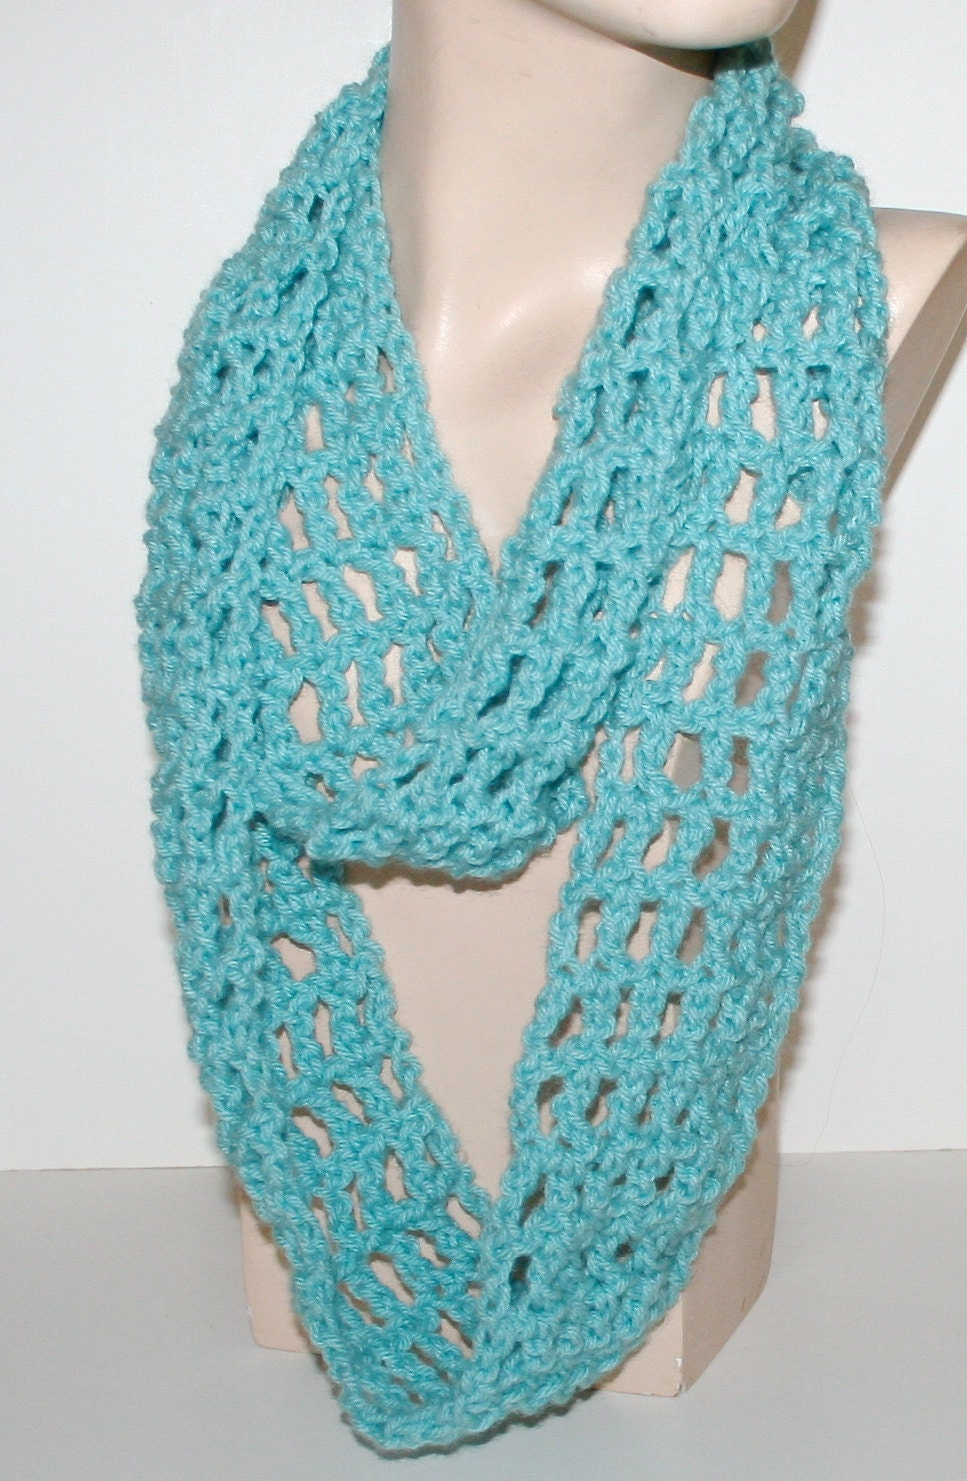 Crochet Pattern For Scarf Easy : Easy Crochet Scarf Pattern Tutorial Cowl by CzechBeaderyShop